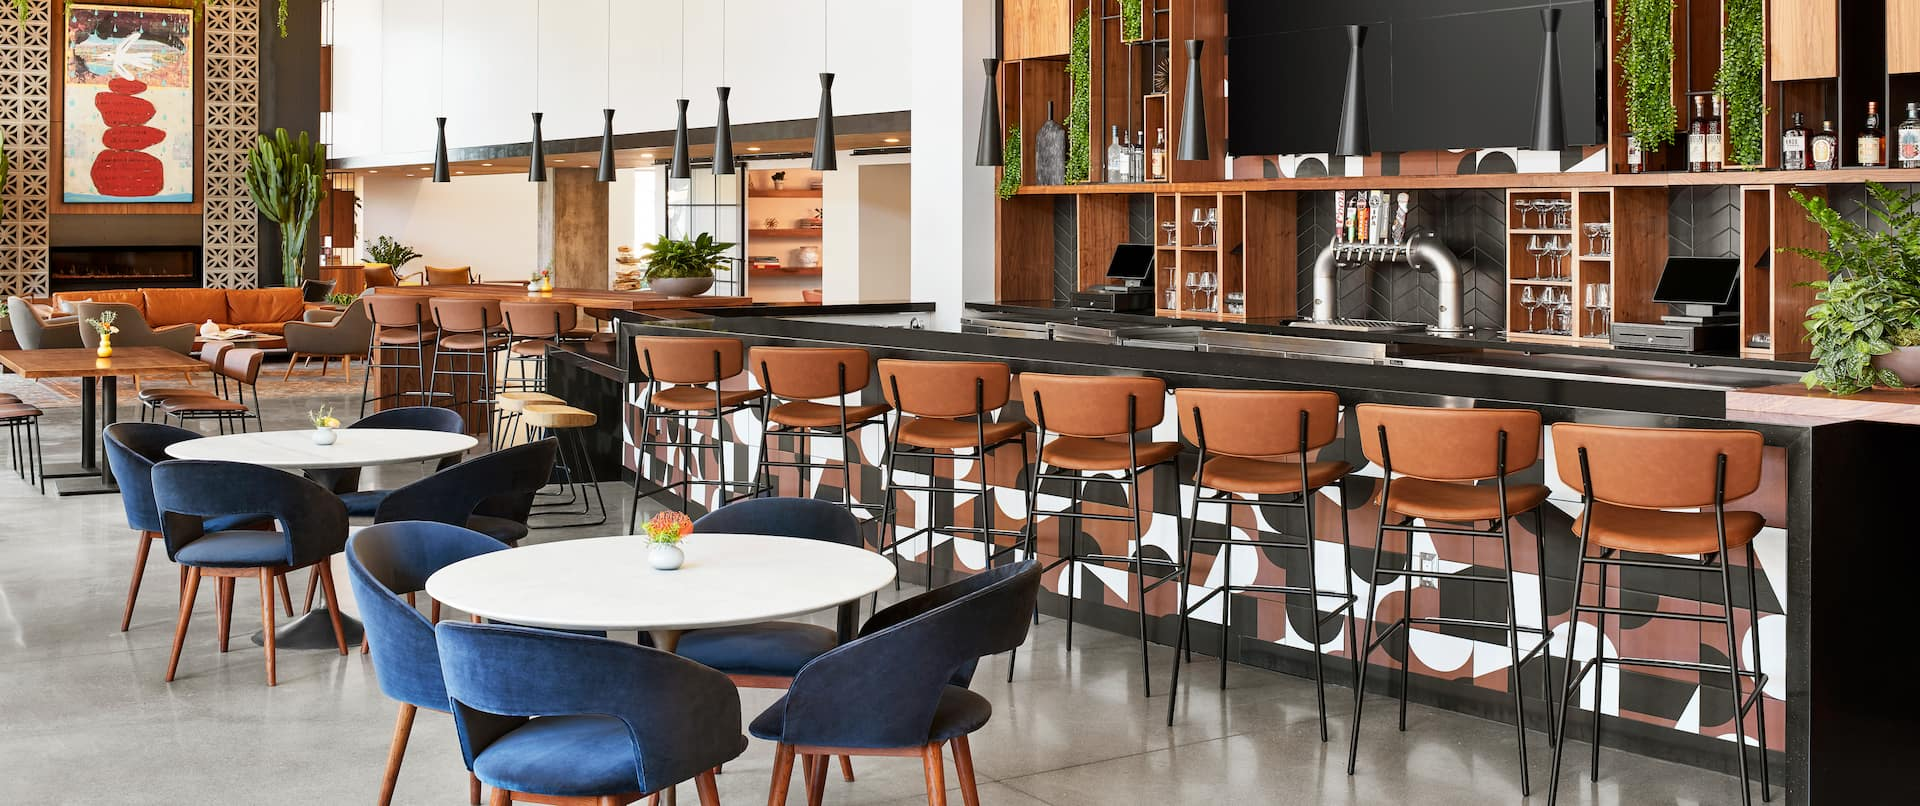 Bar area with tables and stools